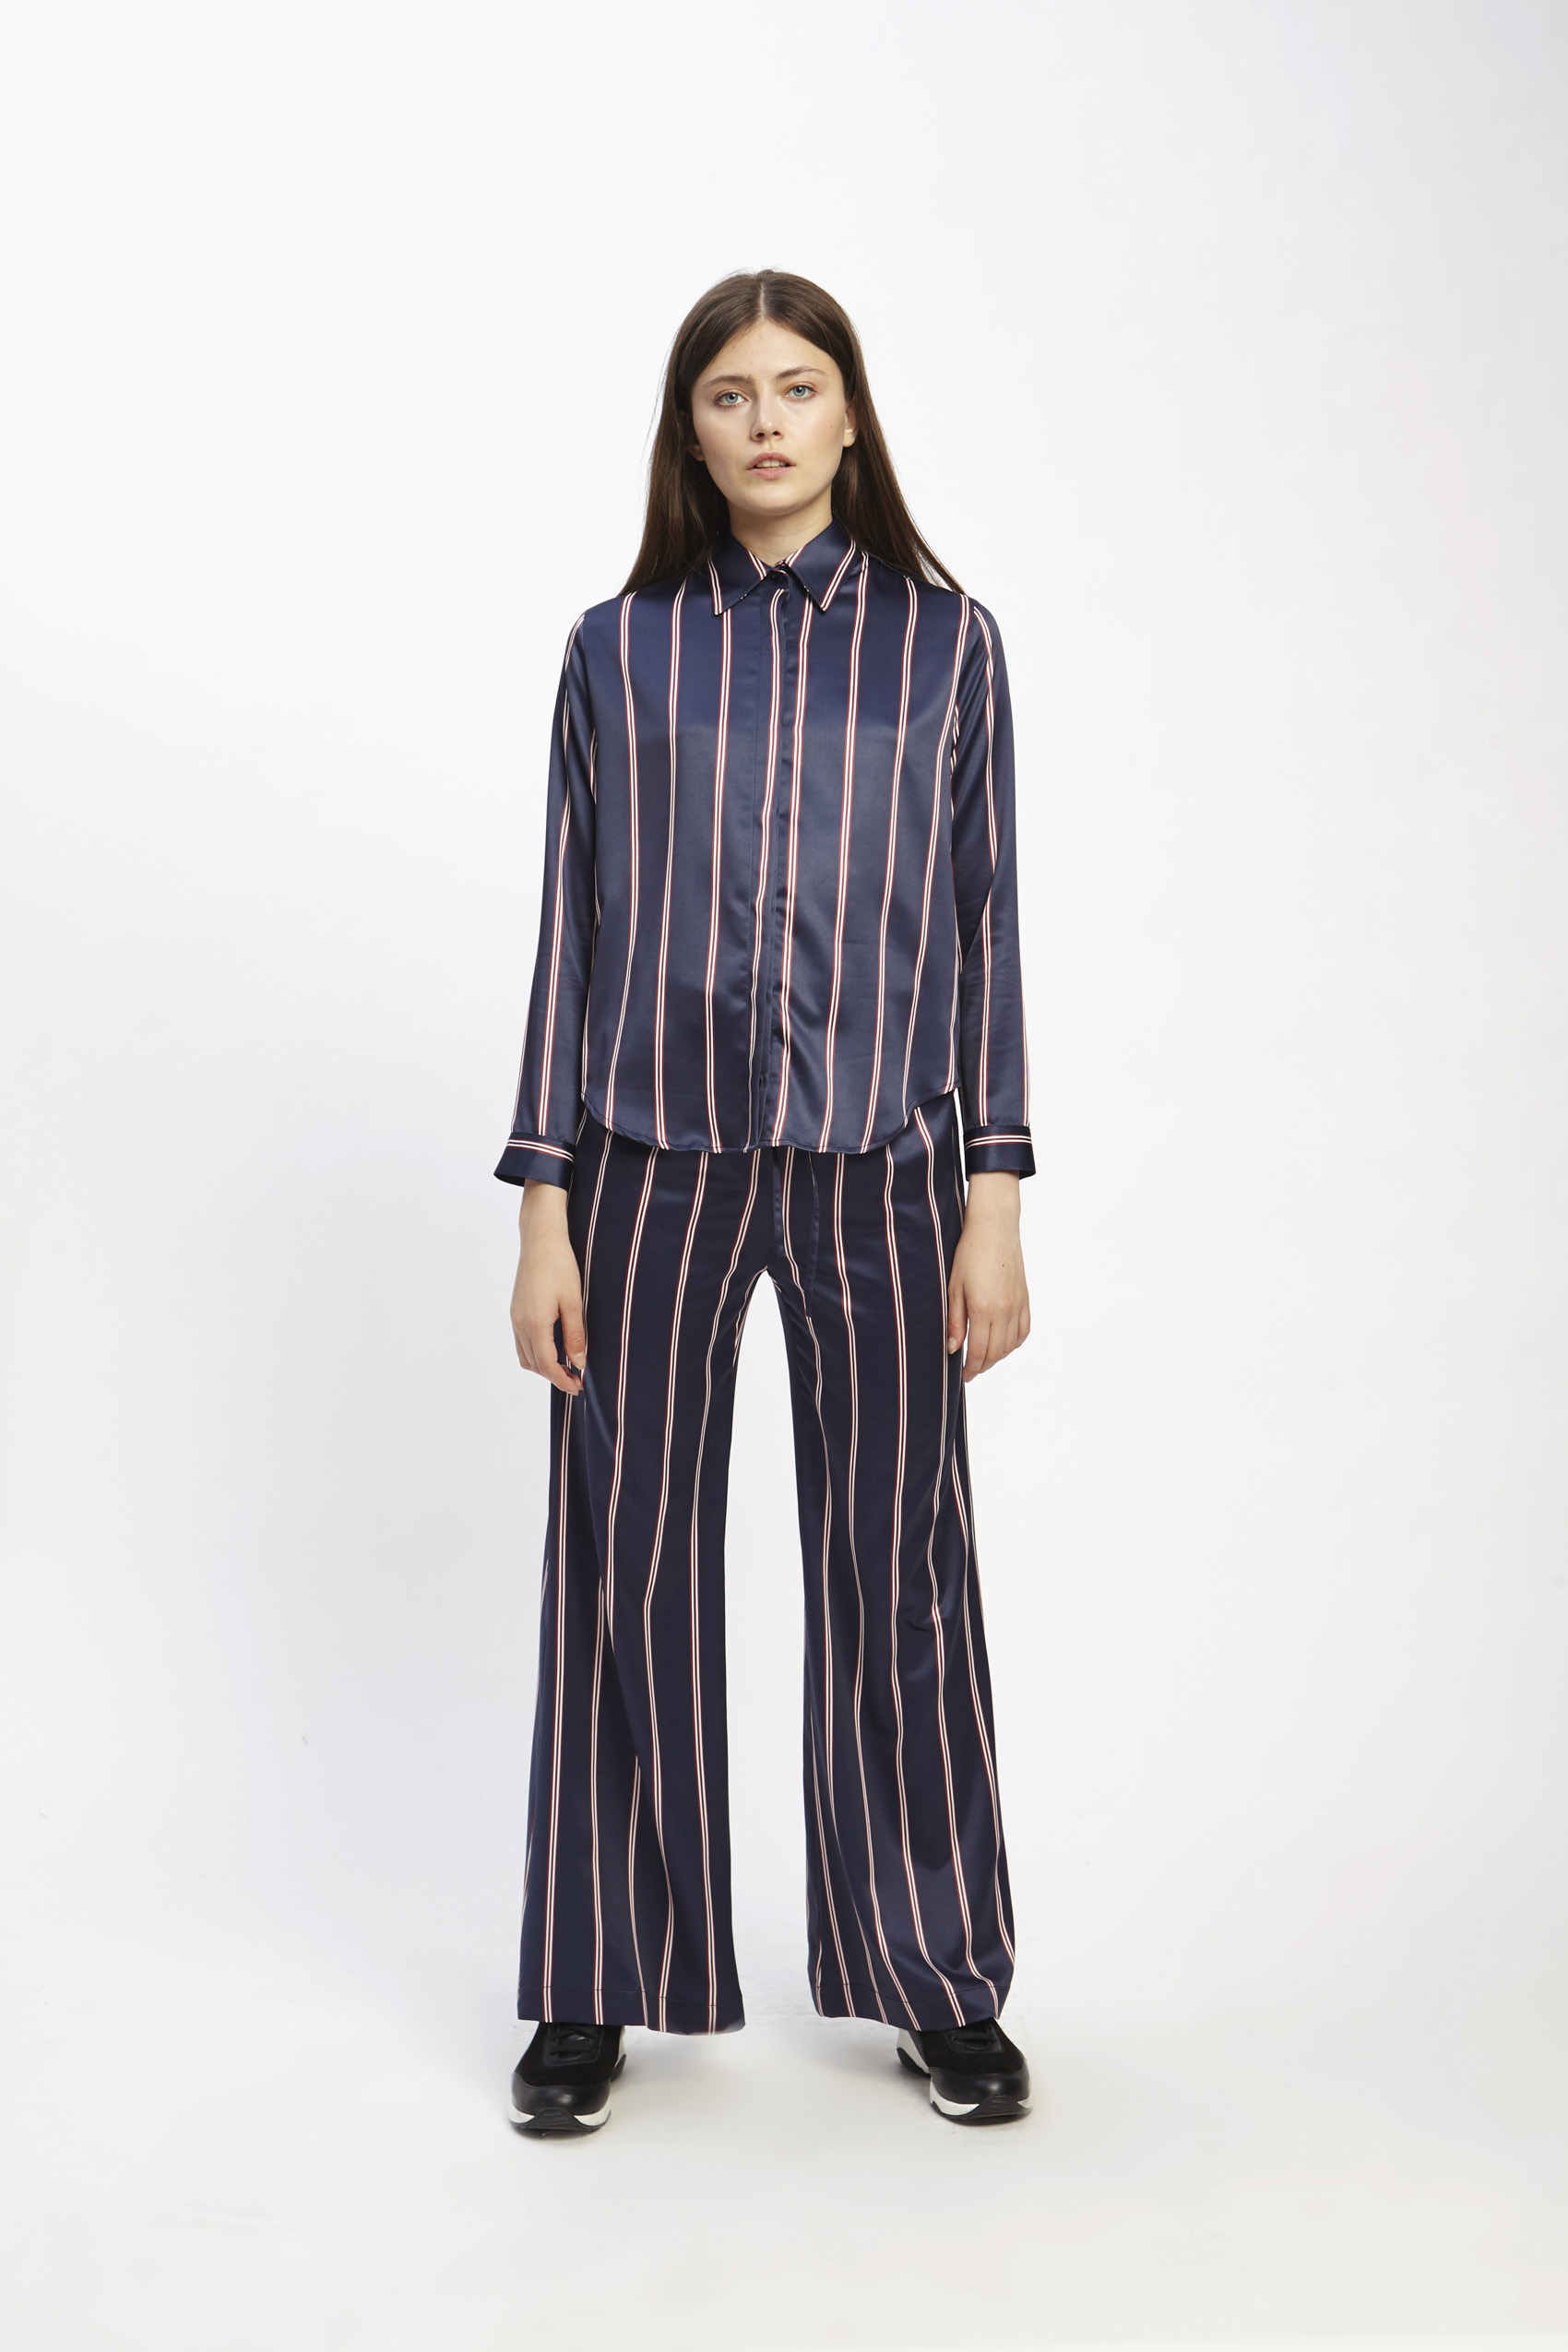 awada_camisa-erin_06-23-2019__picture-1872